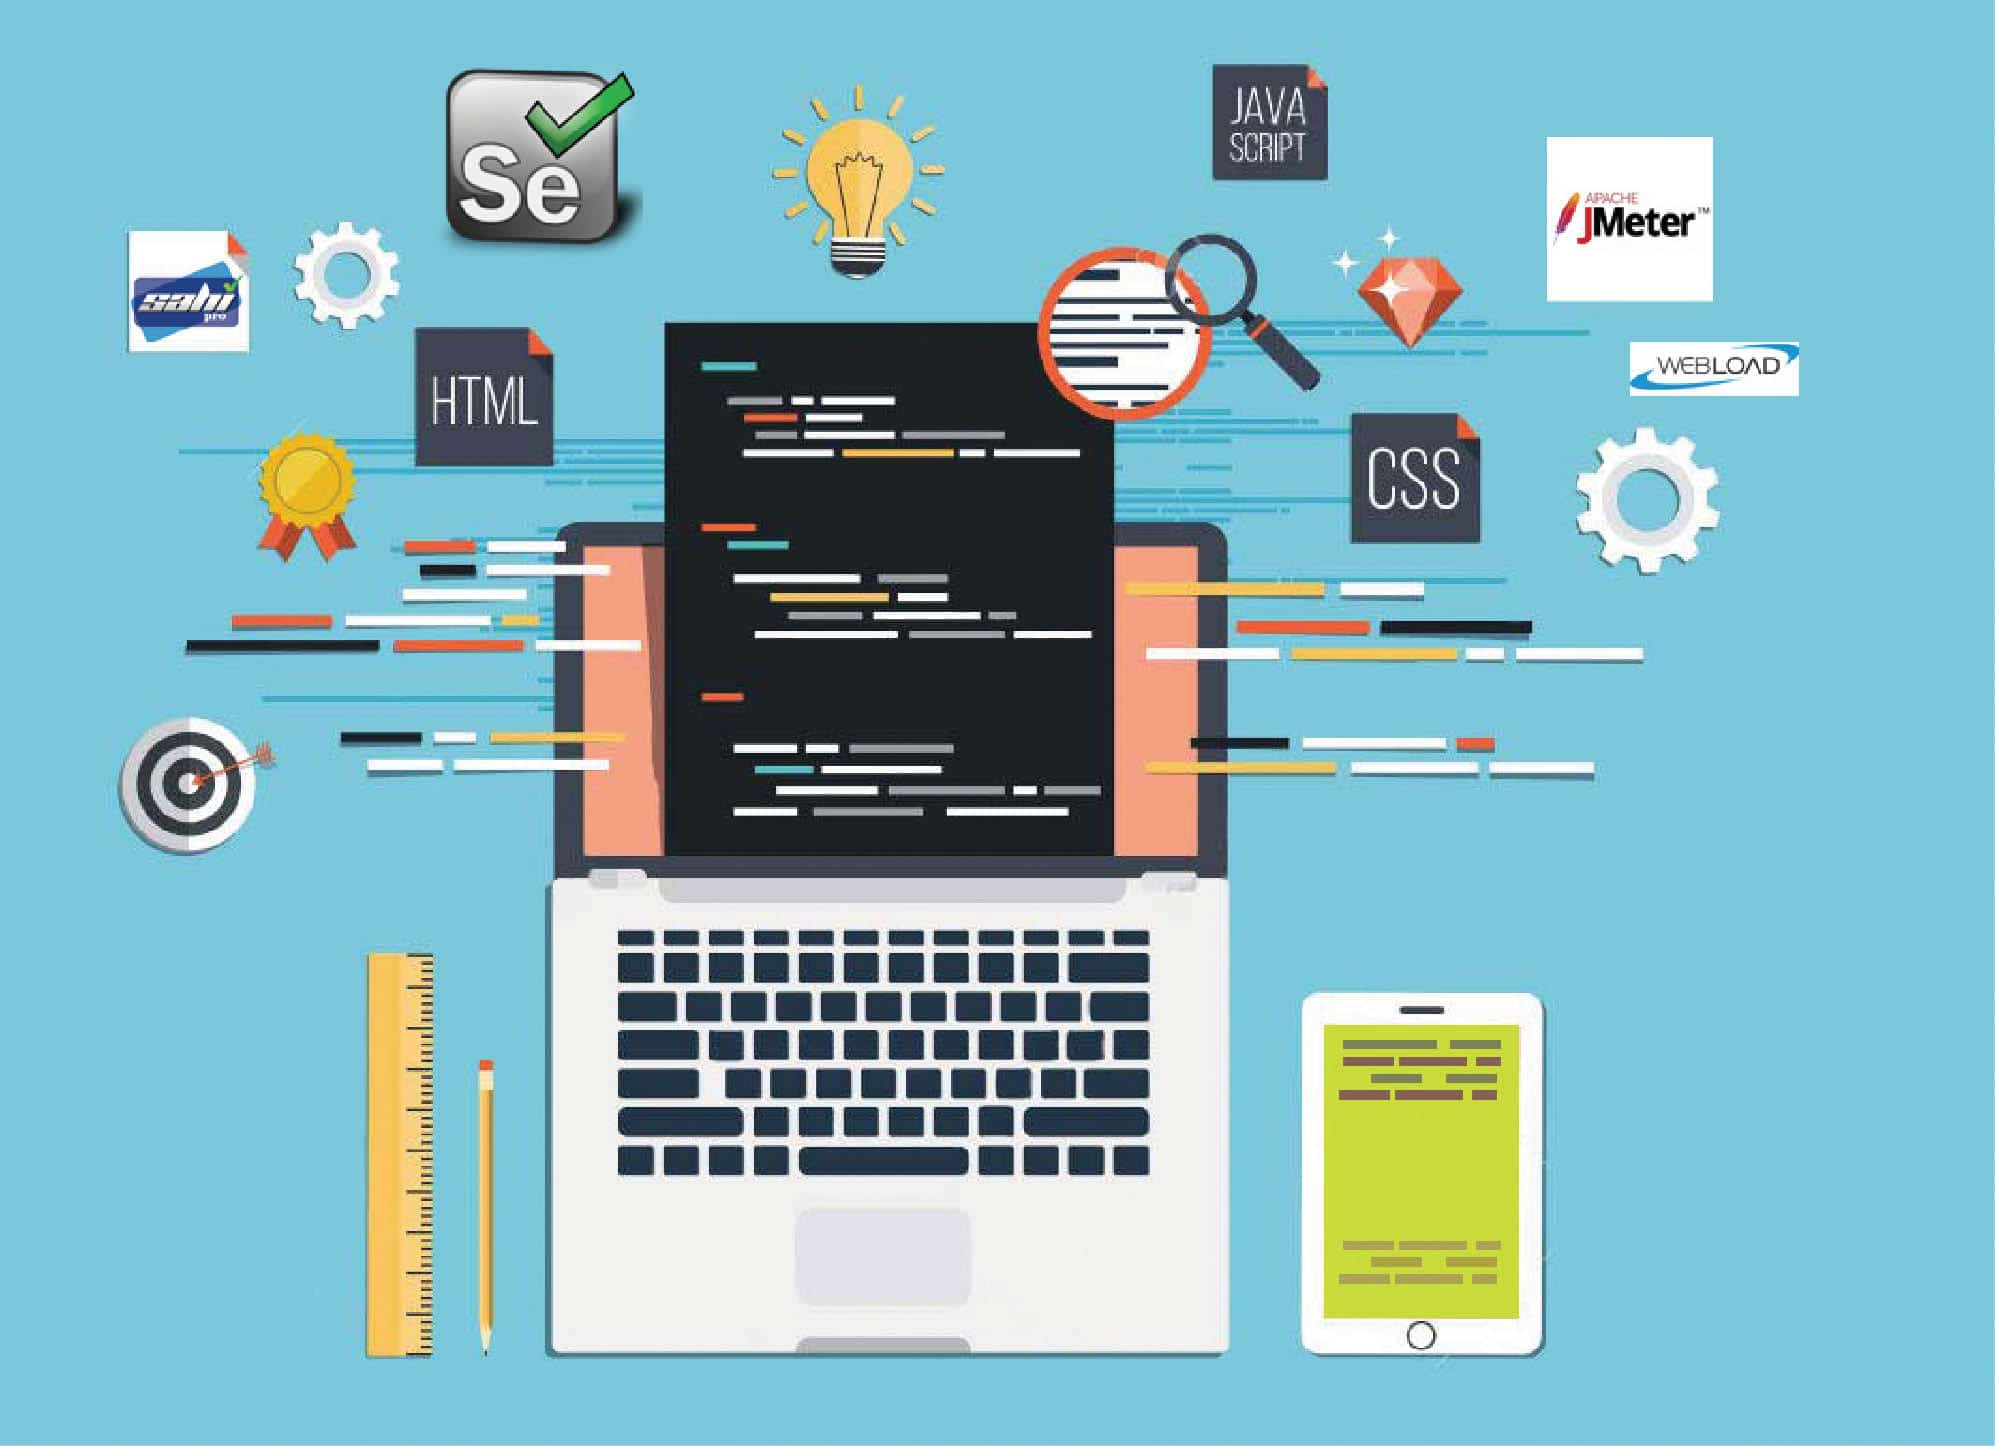 Five Friendly Open Source Tools for Testing Web Applications